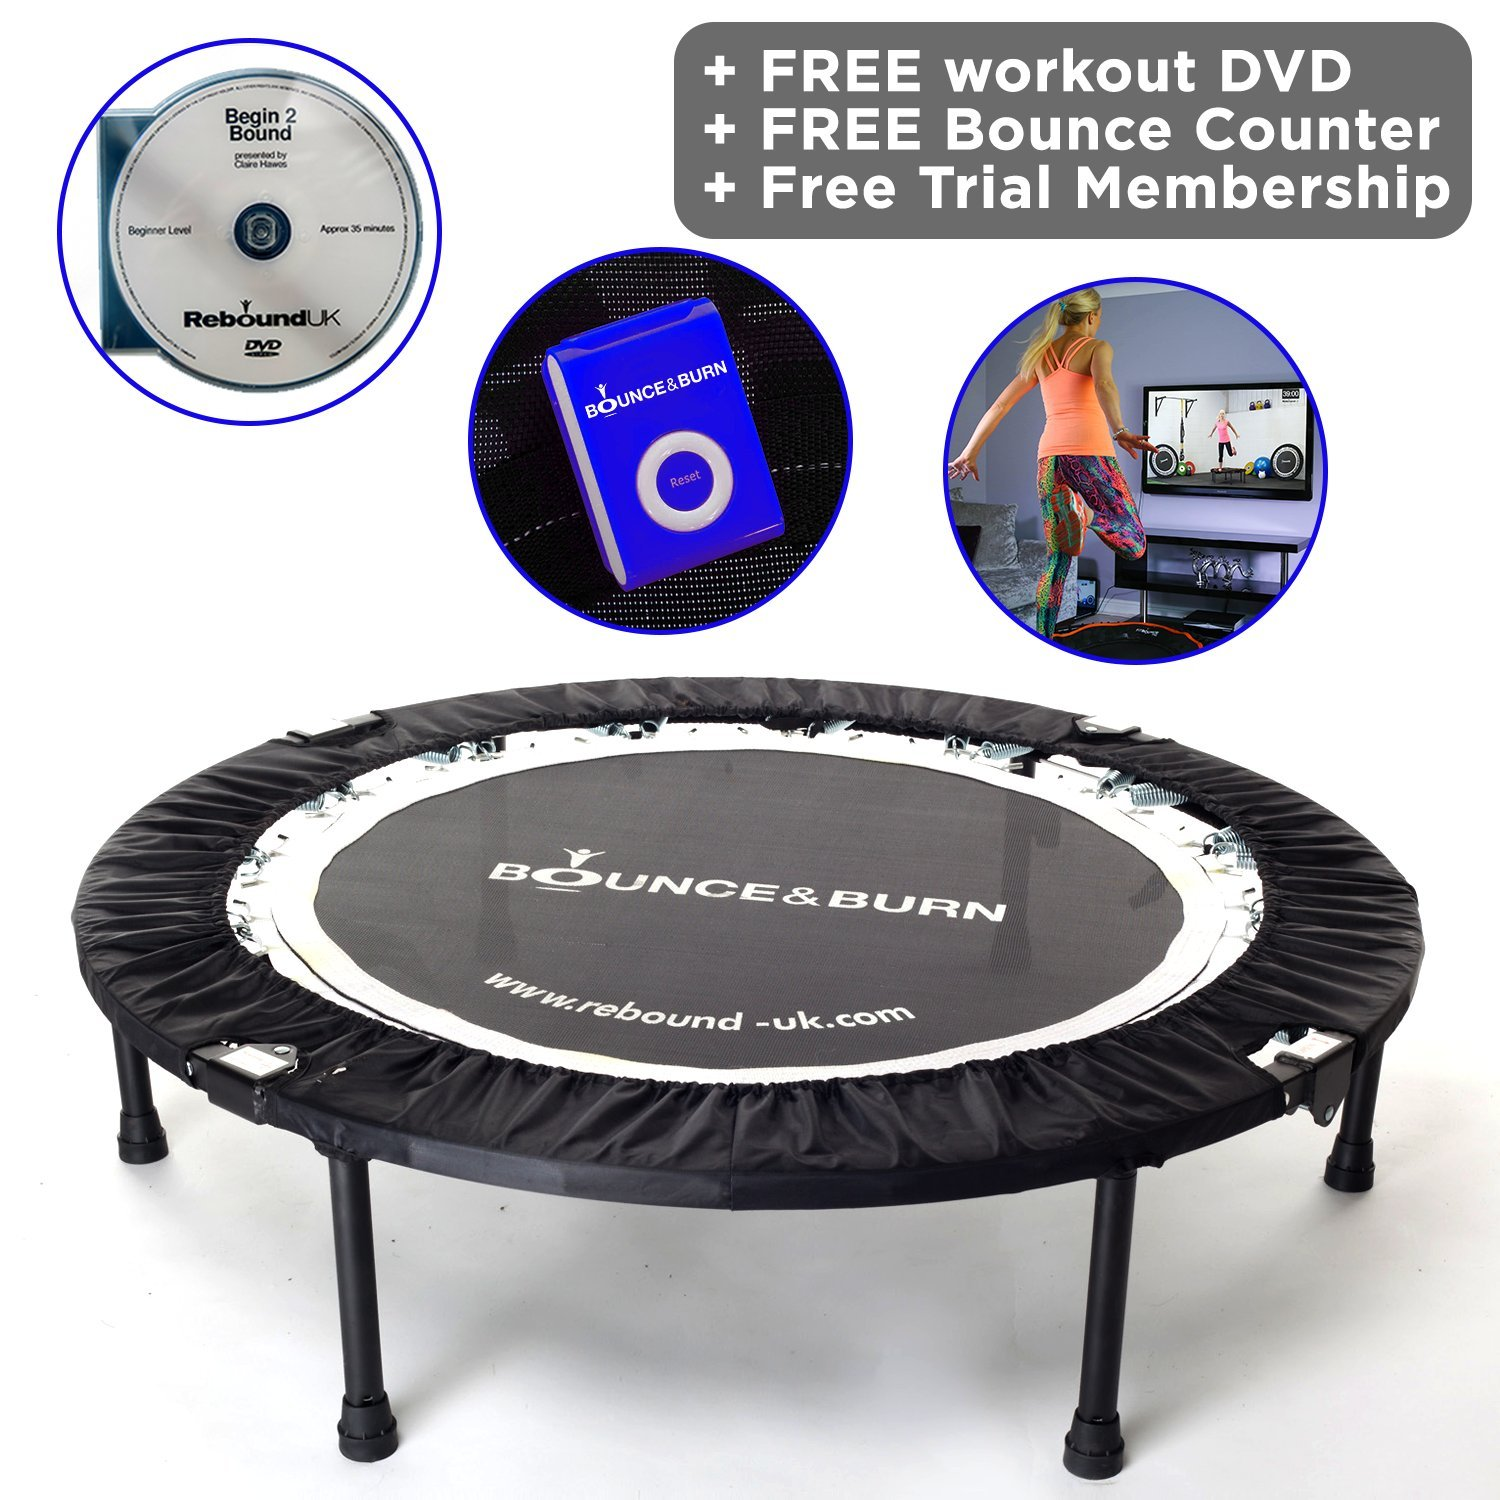 Bounce & Burn II - Mini Trampoline – Best seller - Affordable & FUN way to lose weight and get FIT! Includes DVD & FREE 3 MONTHS VIDEO MEMBERSHIP